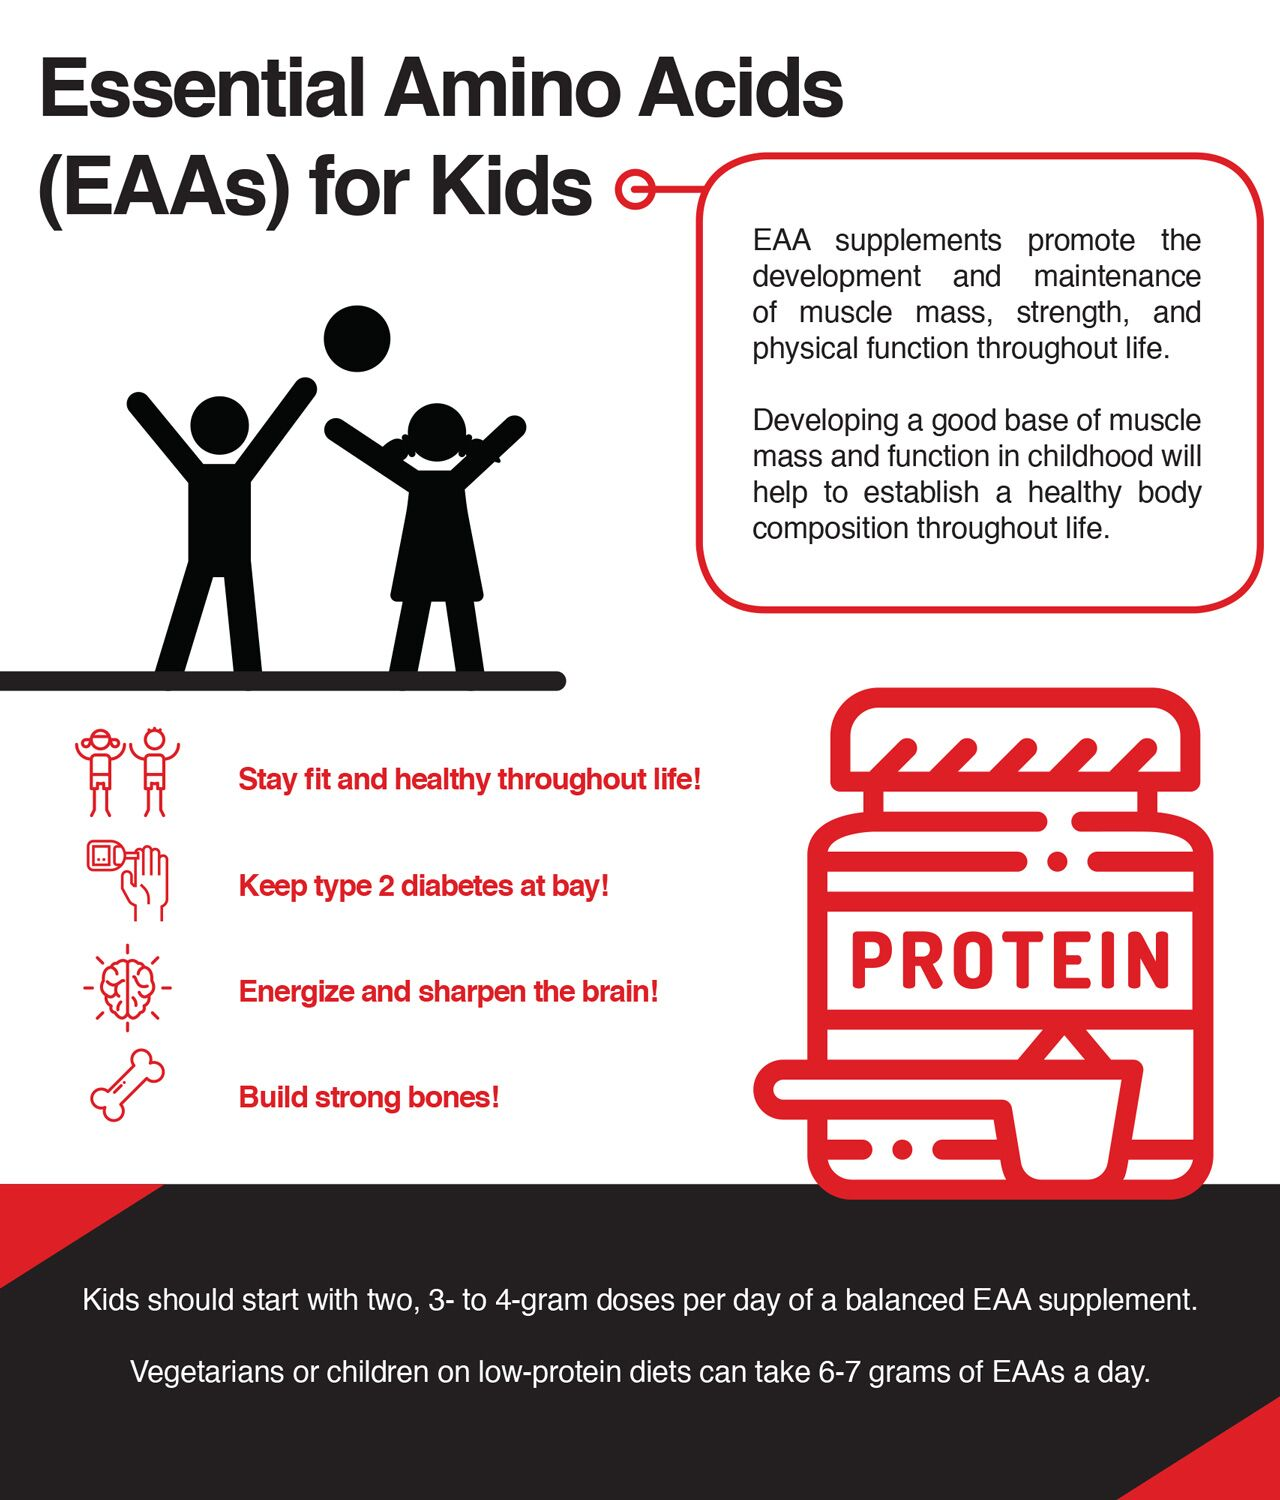 Should kids take essential amino acid supplements?